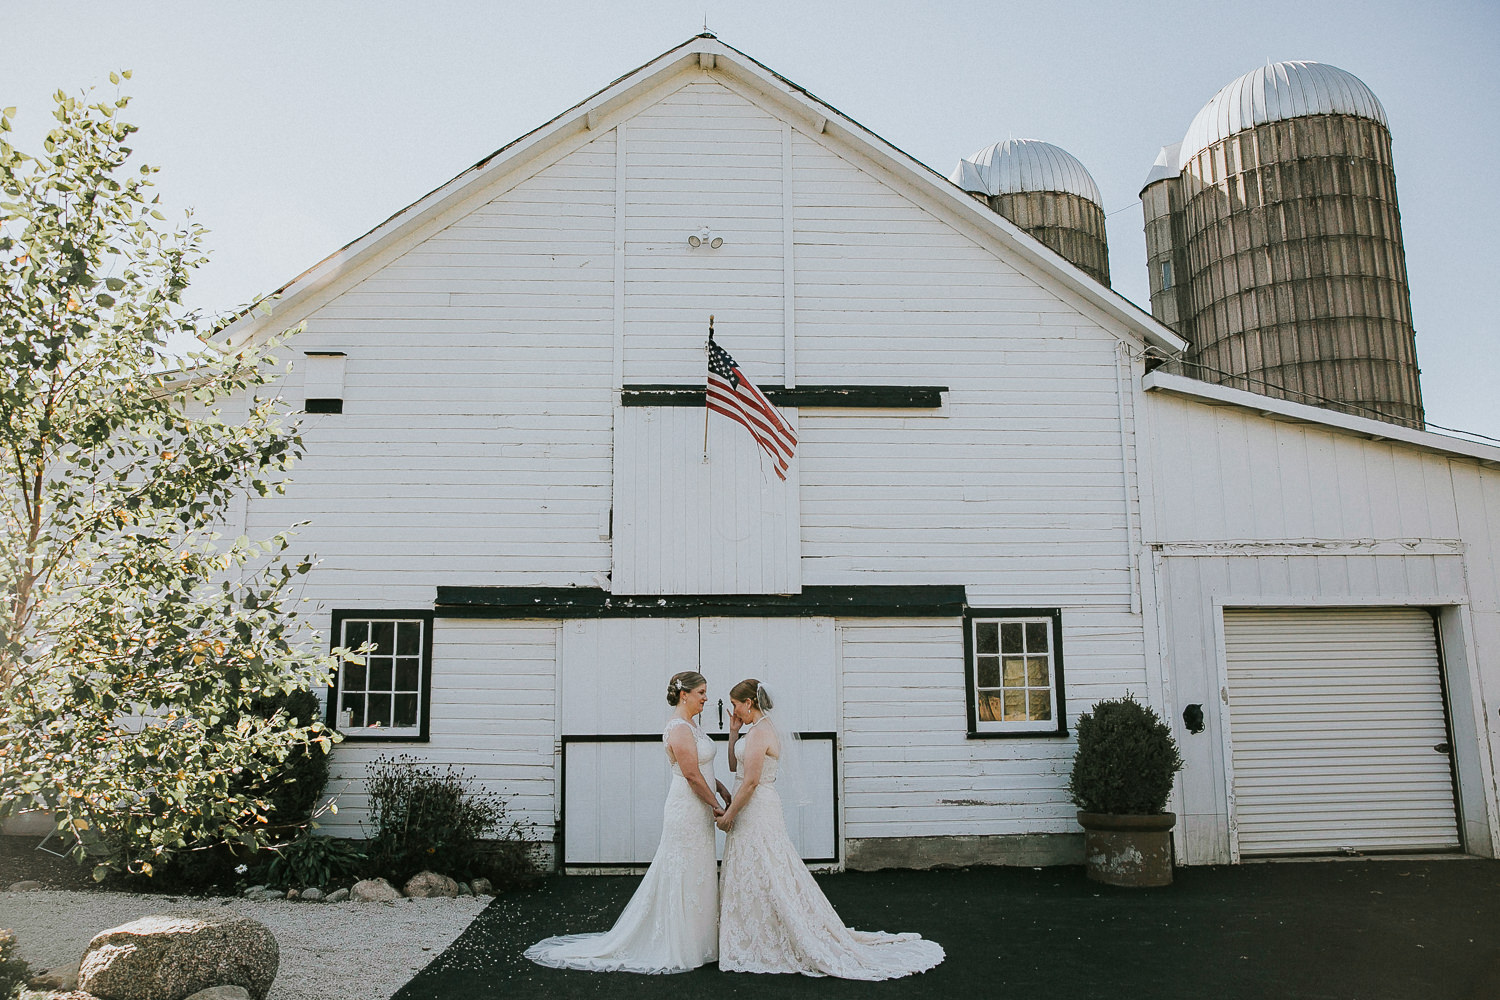 A wedding couple is standing in front of the Heritage Prairie Farm in Ohio.